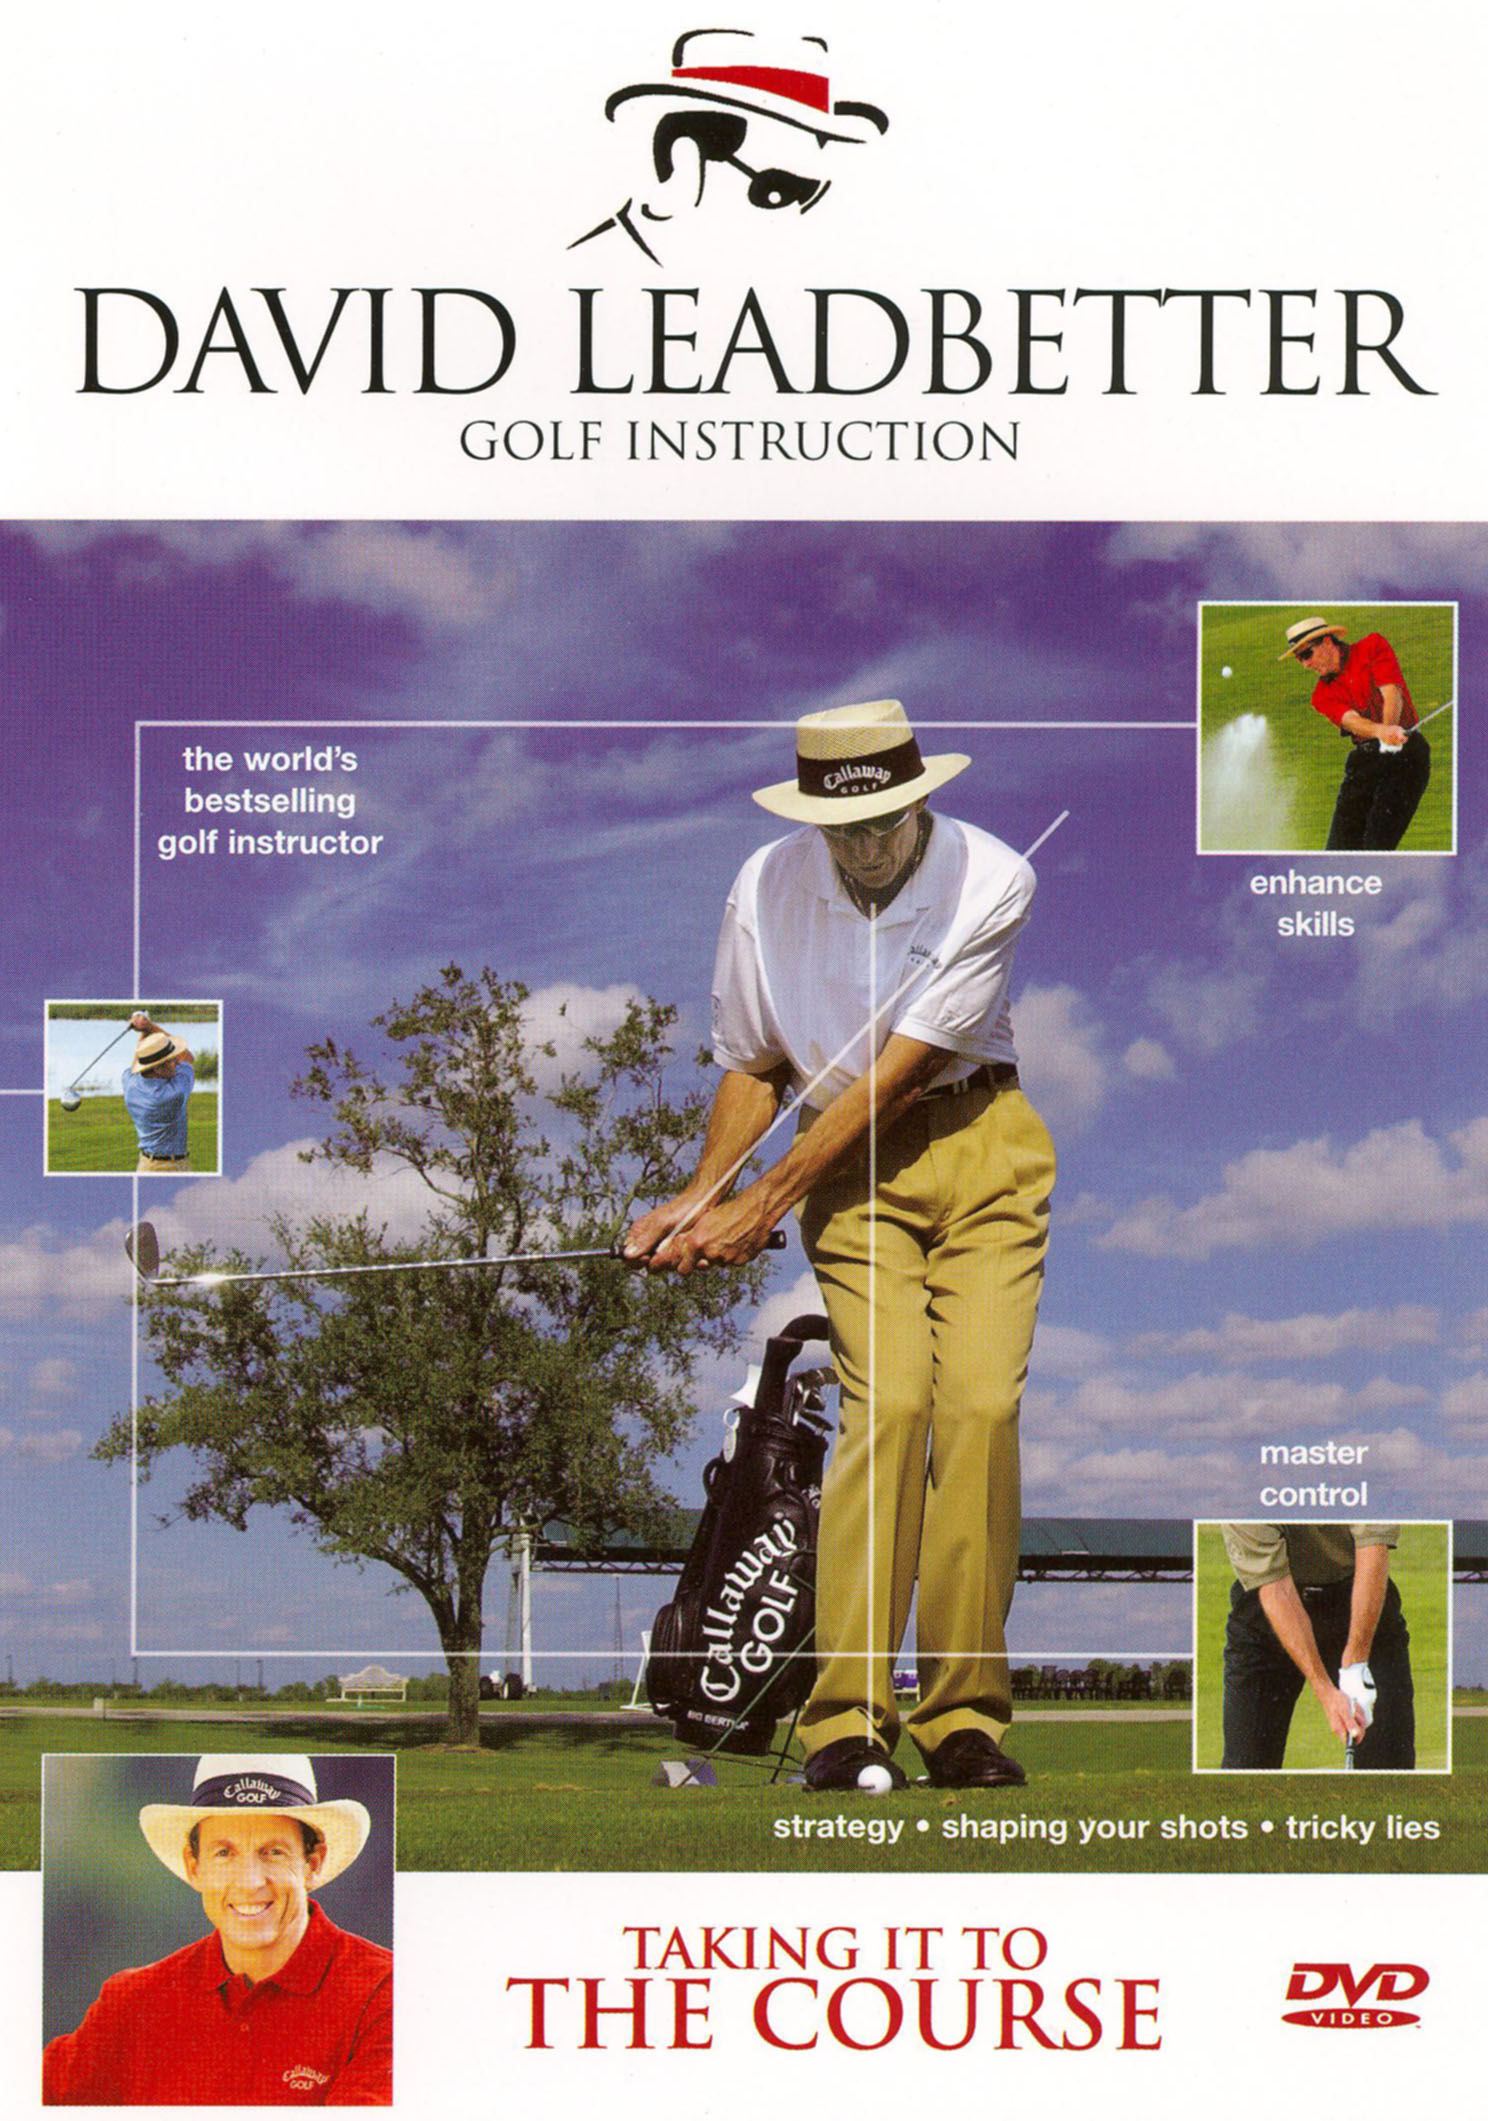 David Leadbetter Golf Instruction: Taking it to the Course